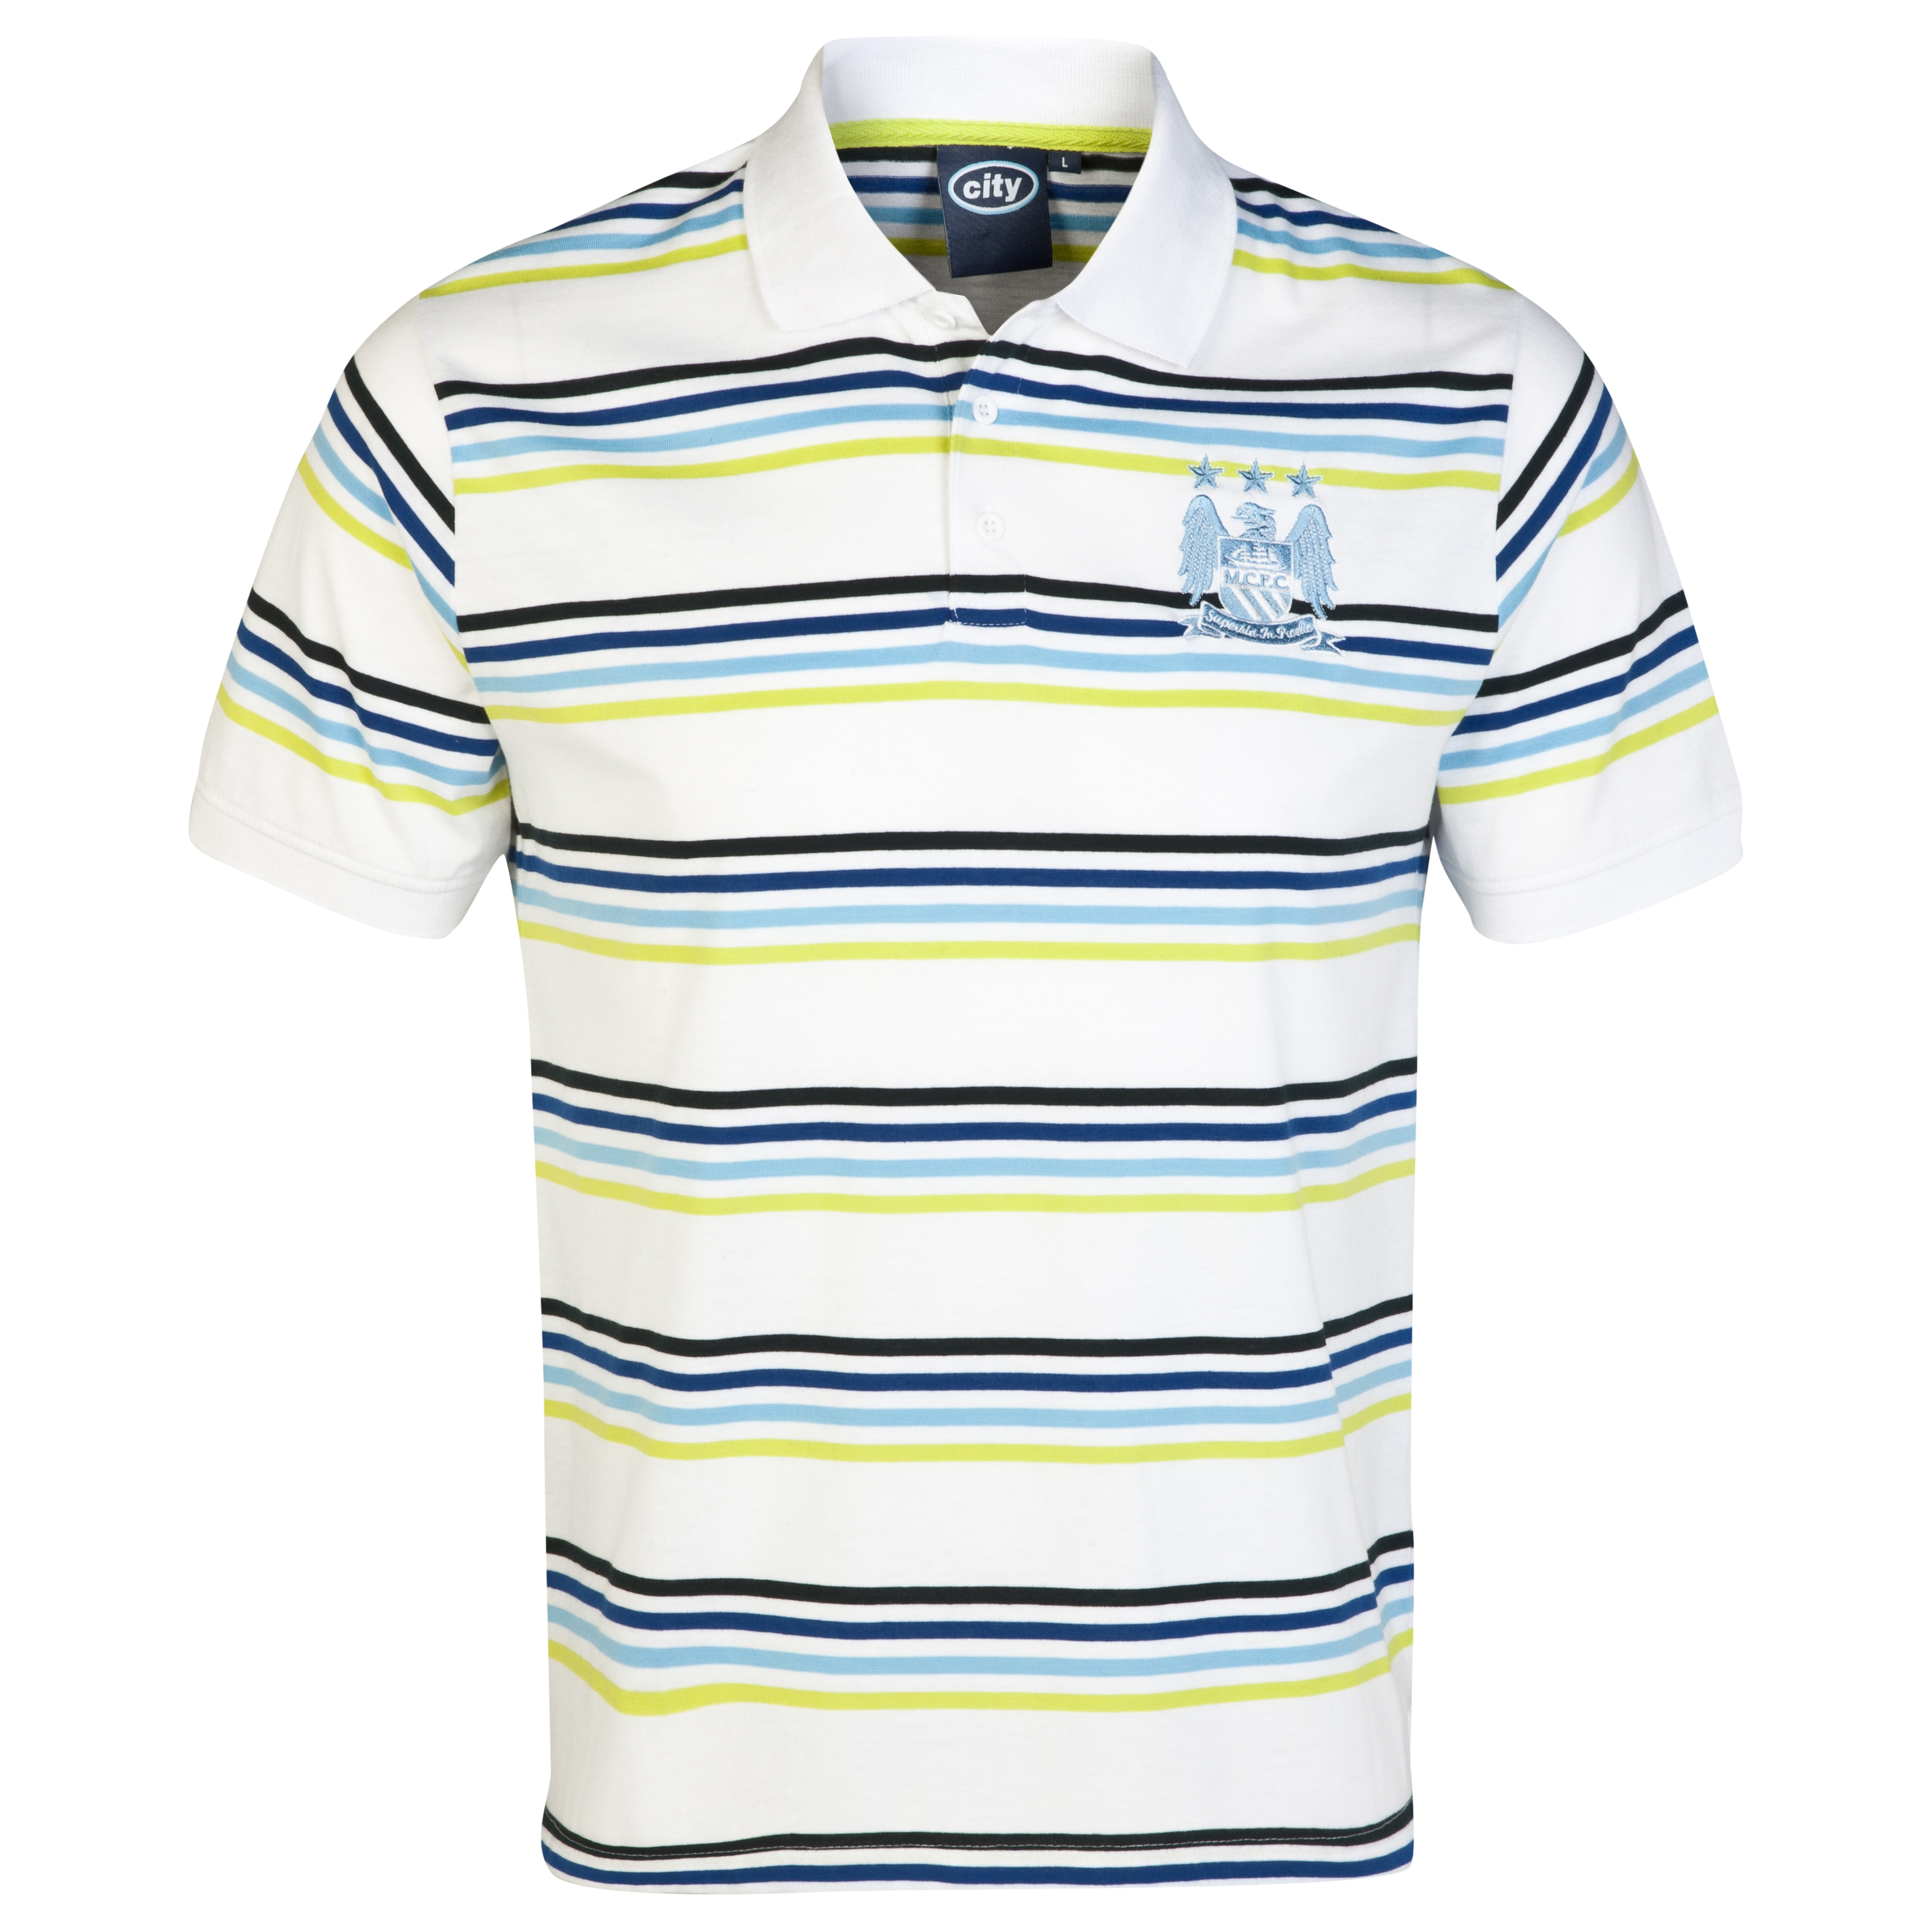 Manchester City Essential Vivid Polo Shirt-Infant Boys White